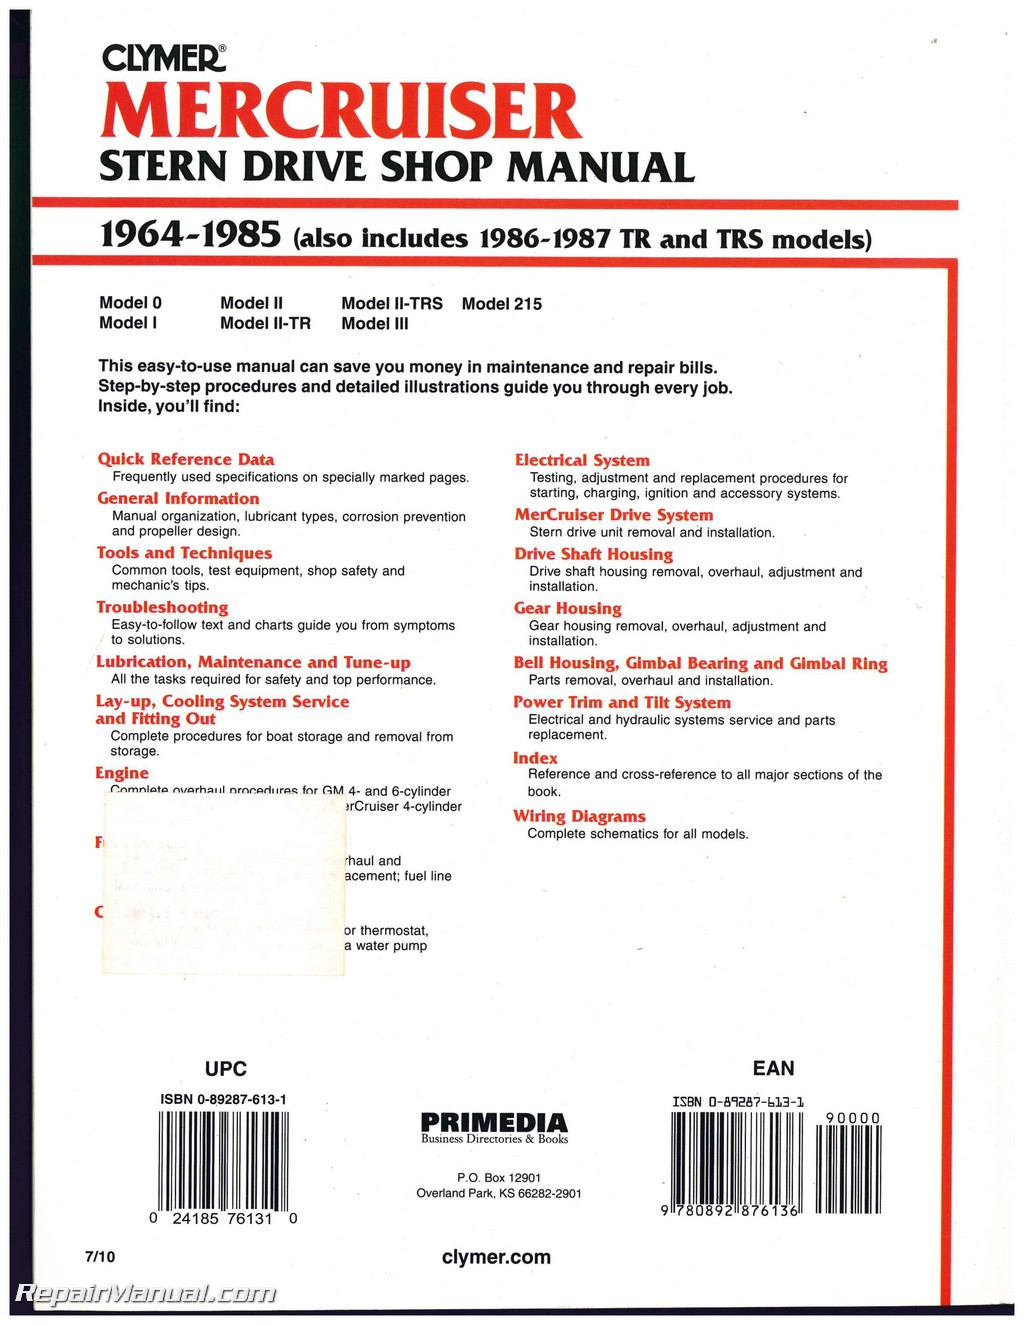 mercruiser stern drive boat engine shop manual 1964 1987 rh repairmanual com Mercruiser 3.0 Specifications Mercruiser 3.0 Oil Capacity